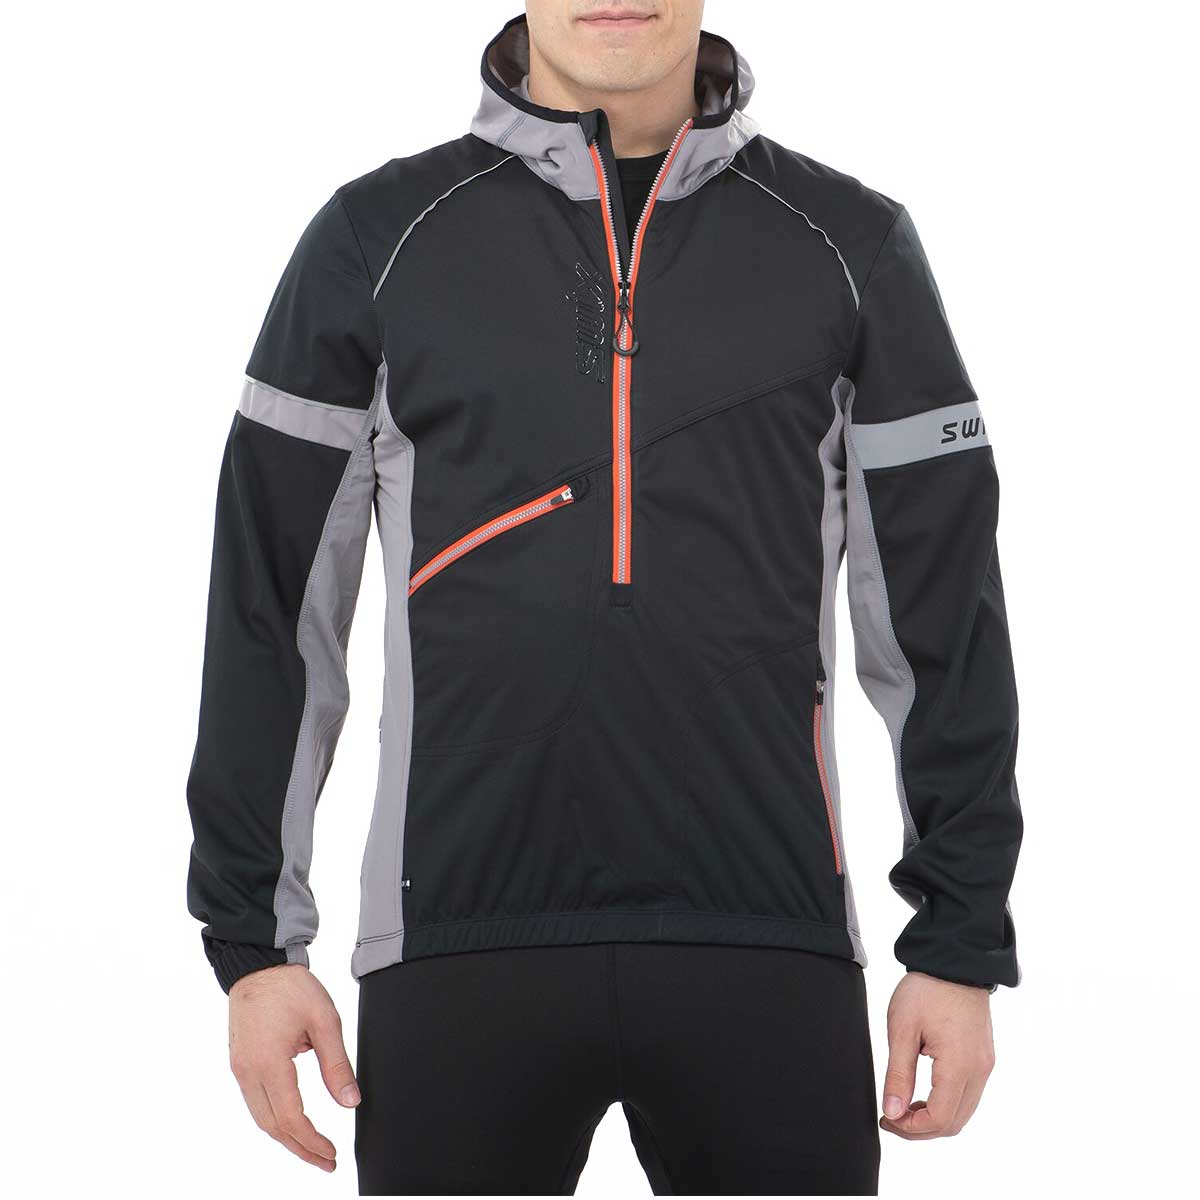 Swix Men's Nybo Pull Over Jacket in Black